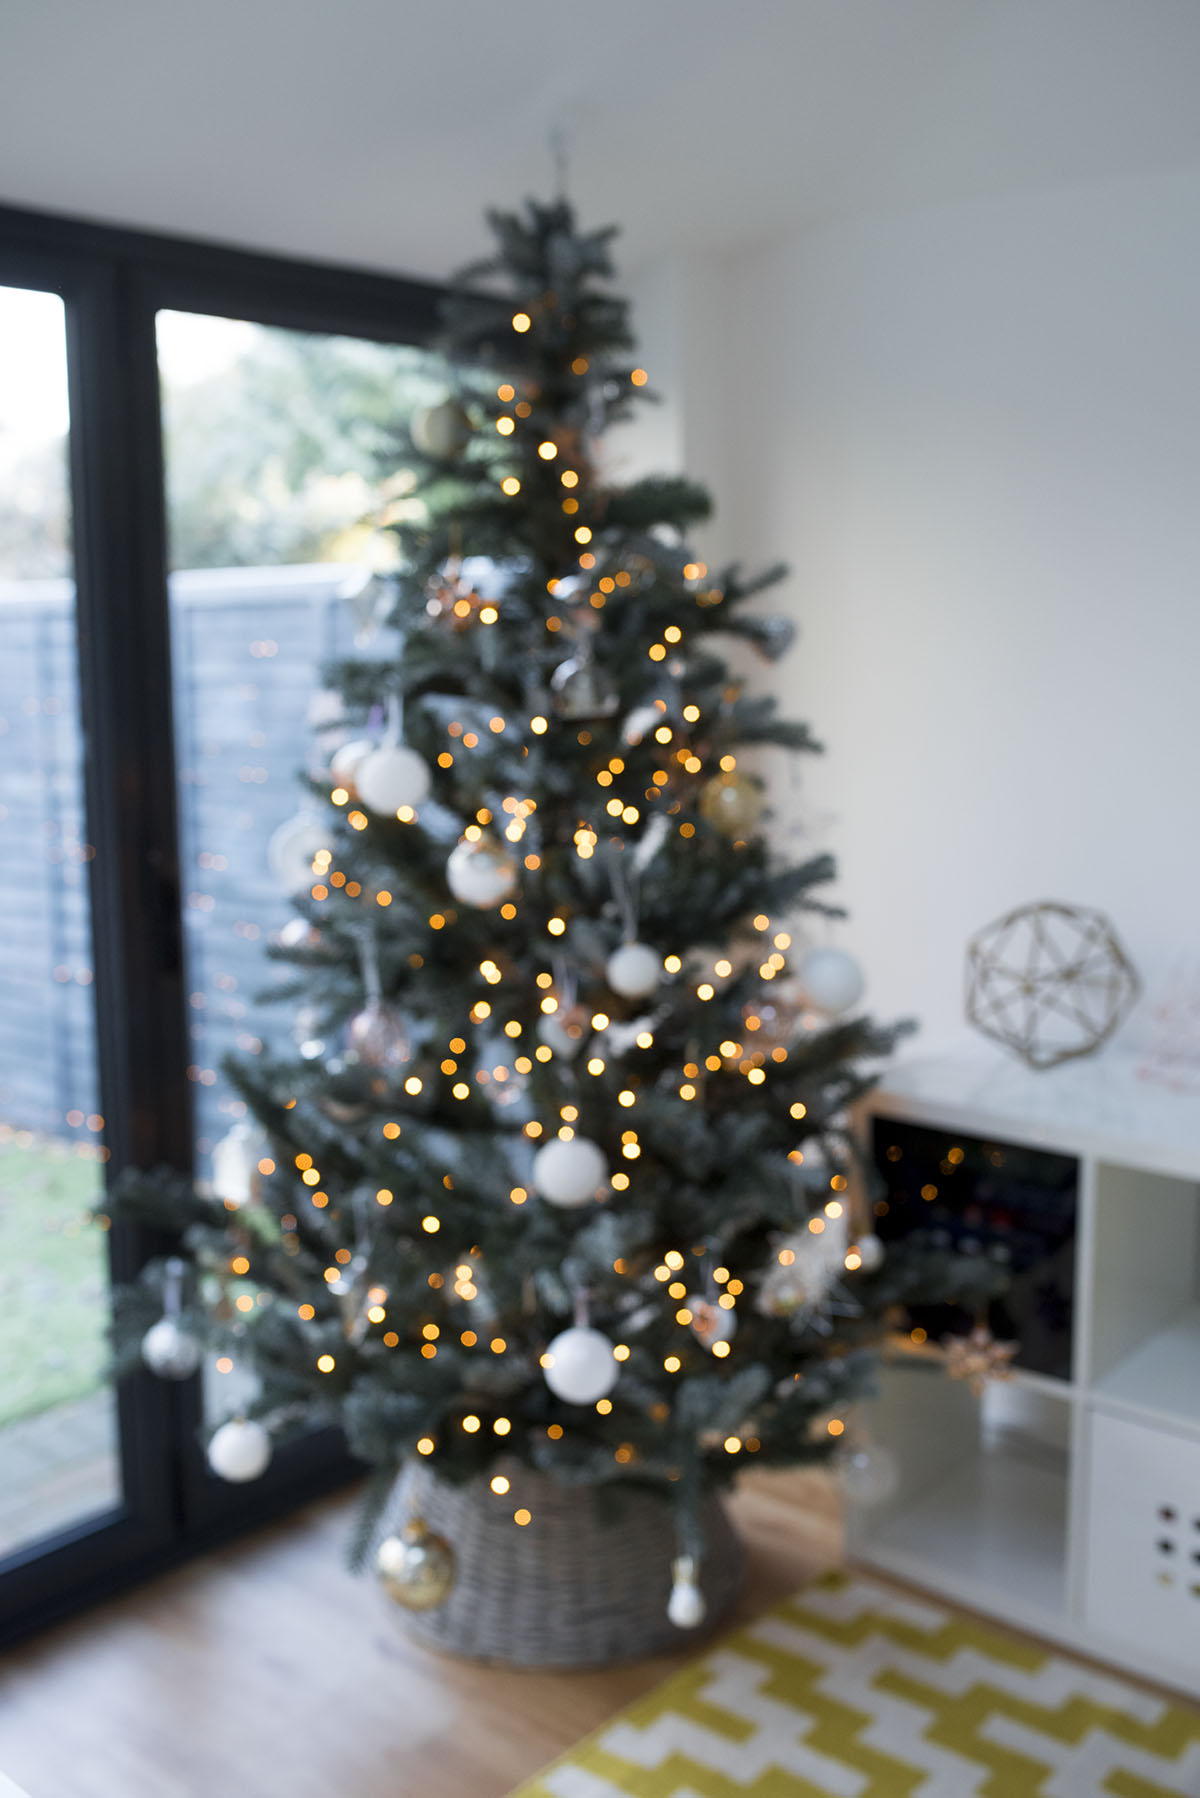 John_lewis_christmas_tree_1 John_lewis_christmas_tree_2  John_lewis_christmas_tree_3 John_lewis_christmas_tree_4  John_lewis_christmas_tree_5 ...